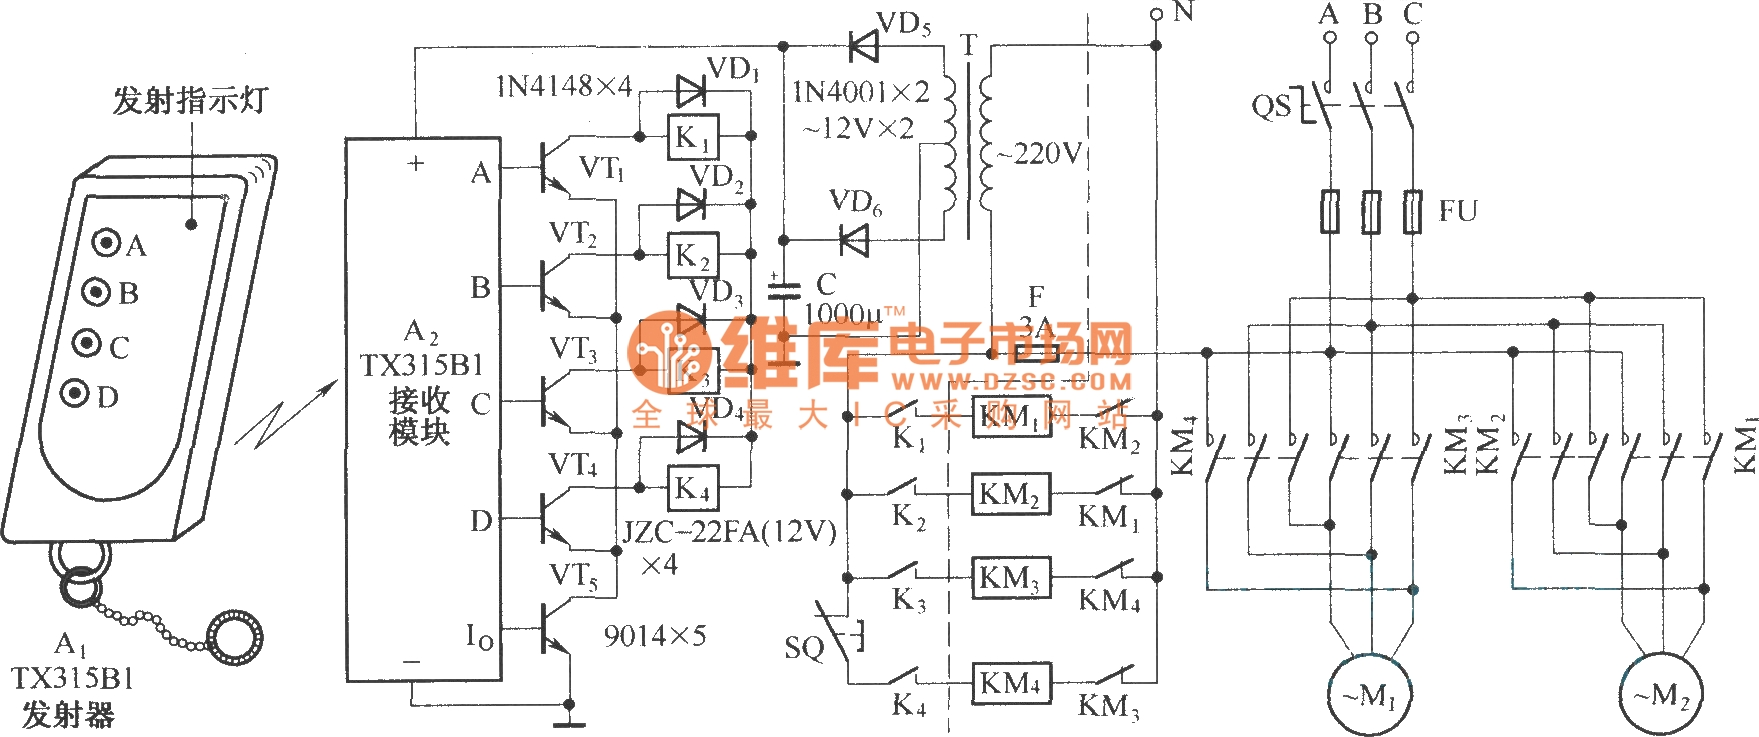 overhead crane wiring diagram Collection-Overhead Crane Wiring Diagram Luxury Electric Single Girder Crane Radio Remote Control Tx315b1 Circuit 19-m